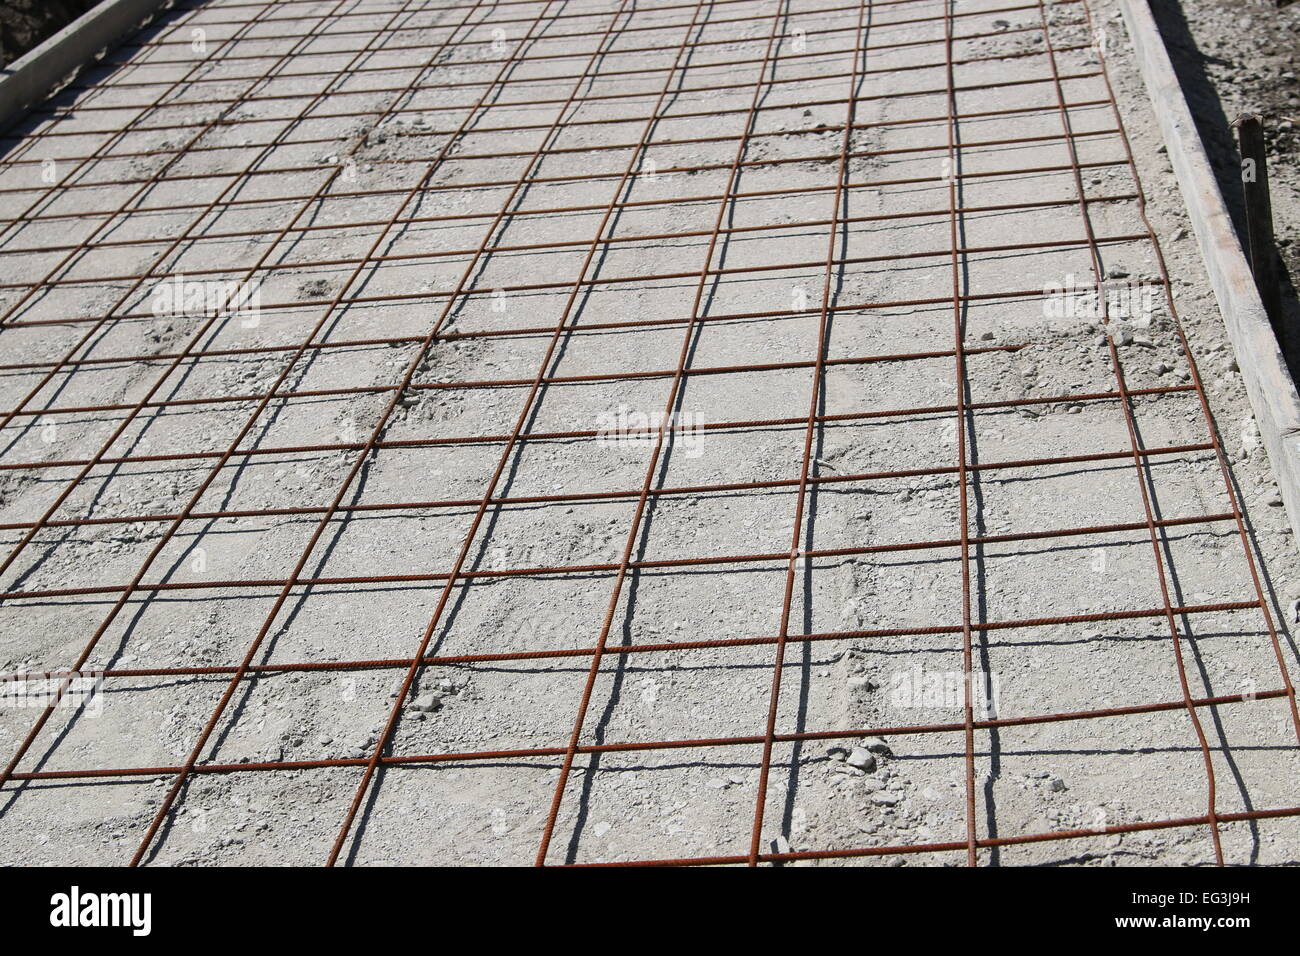 Steel frames for reinforced concrete pouring to making new walking ...